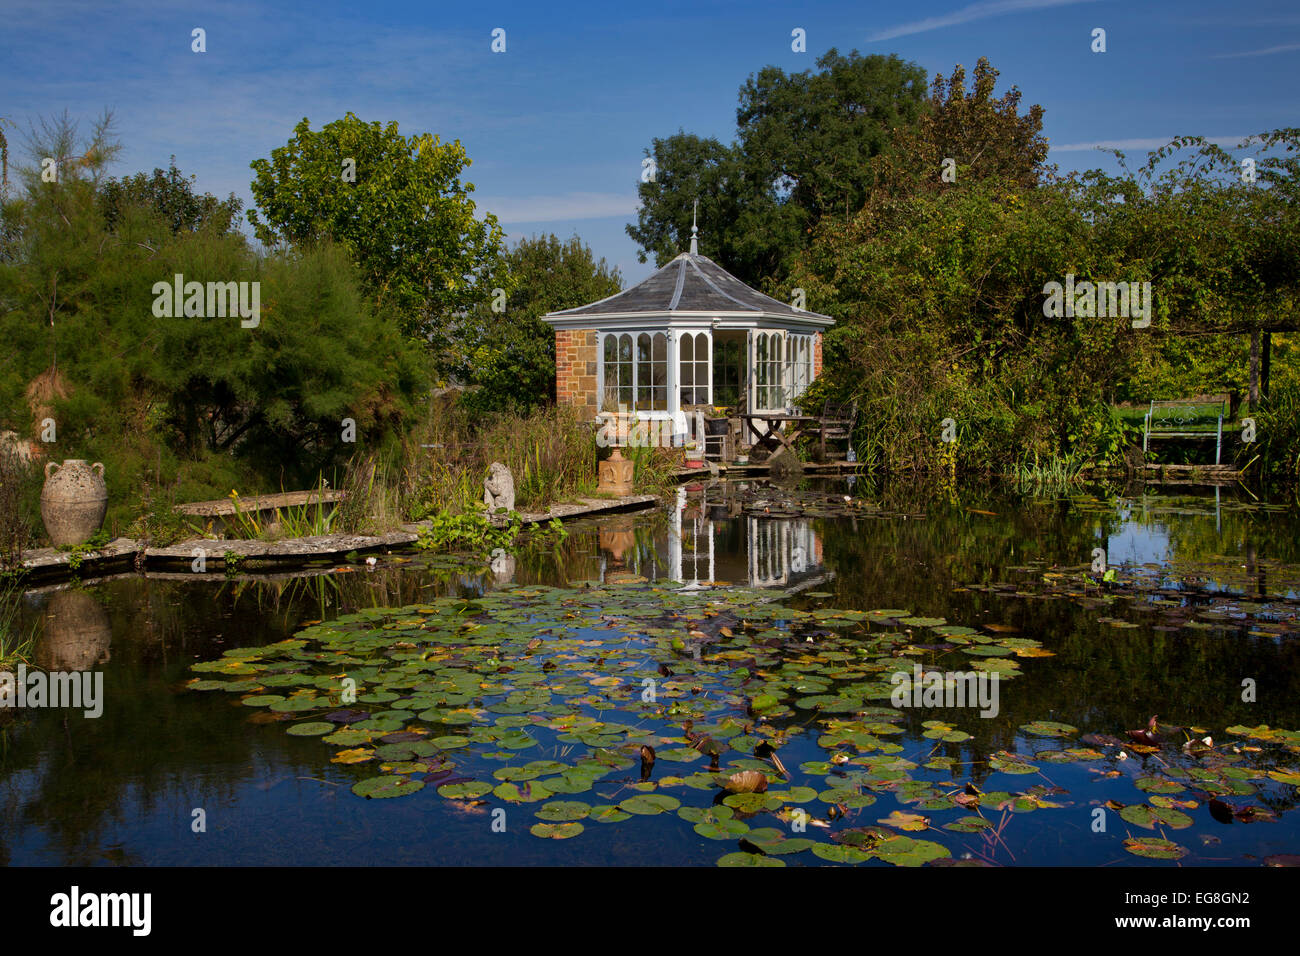 Large Garden Pond In Summer With Brick Summerhouse And